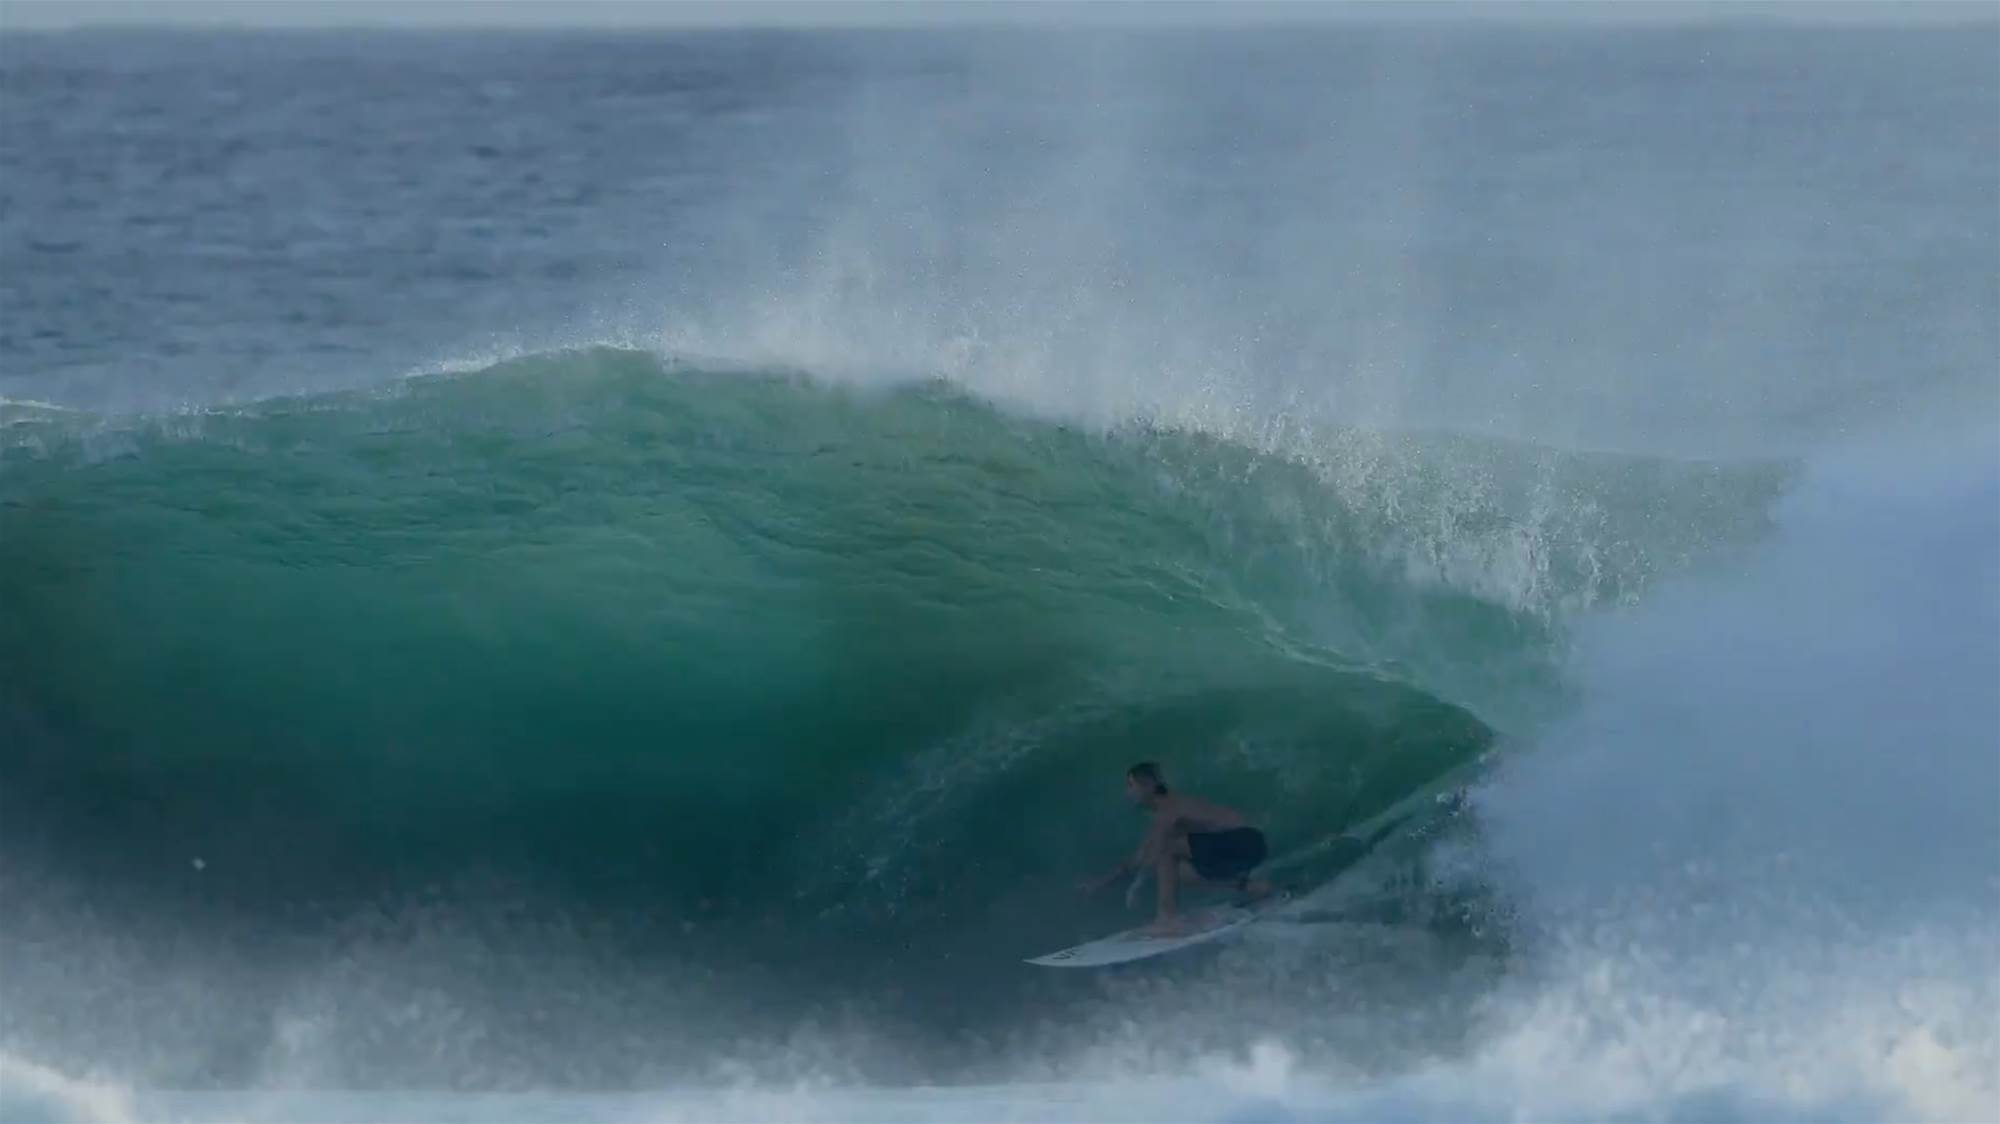 McKenzie Bowden Describes His Wave at Kirra That Went Viral